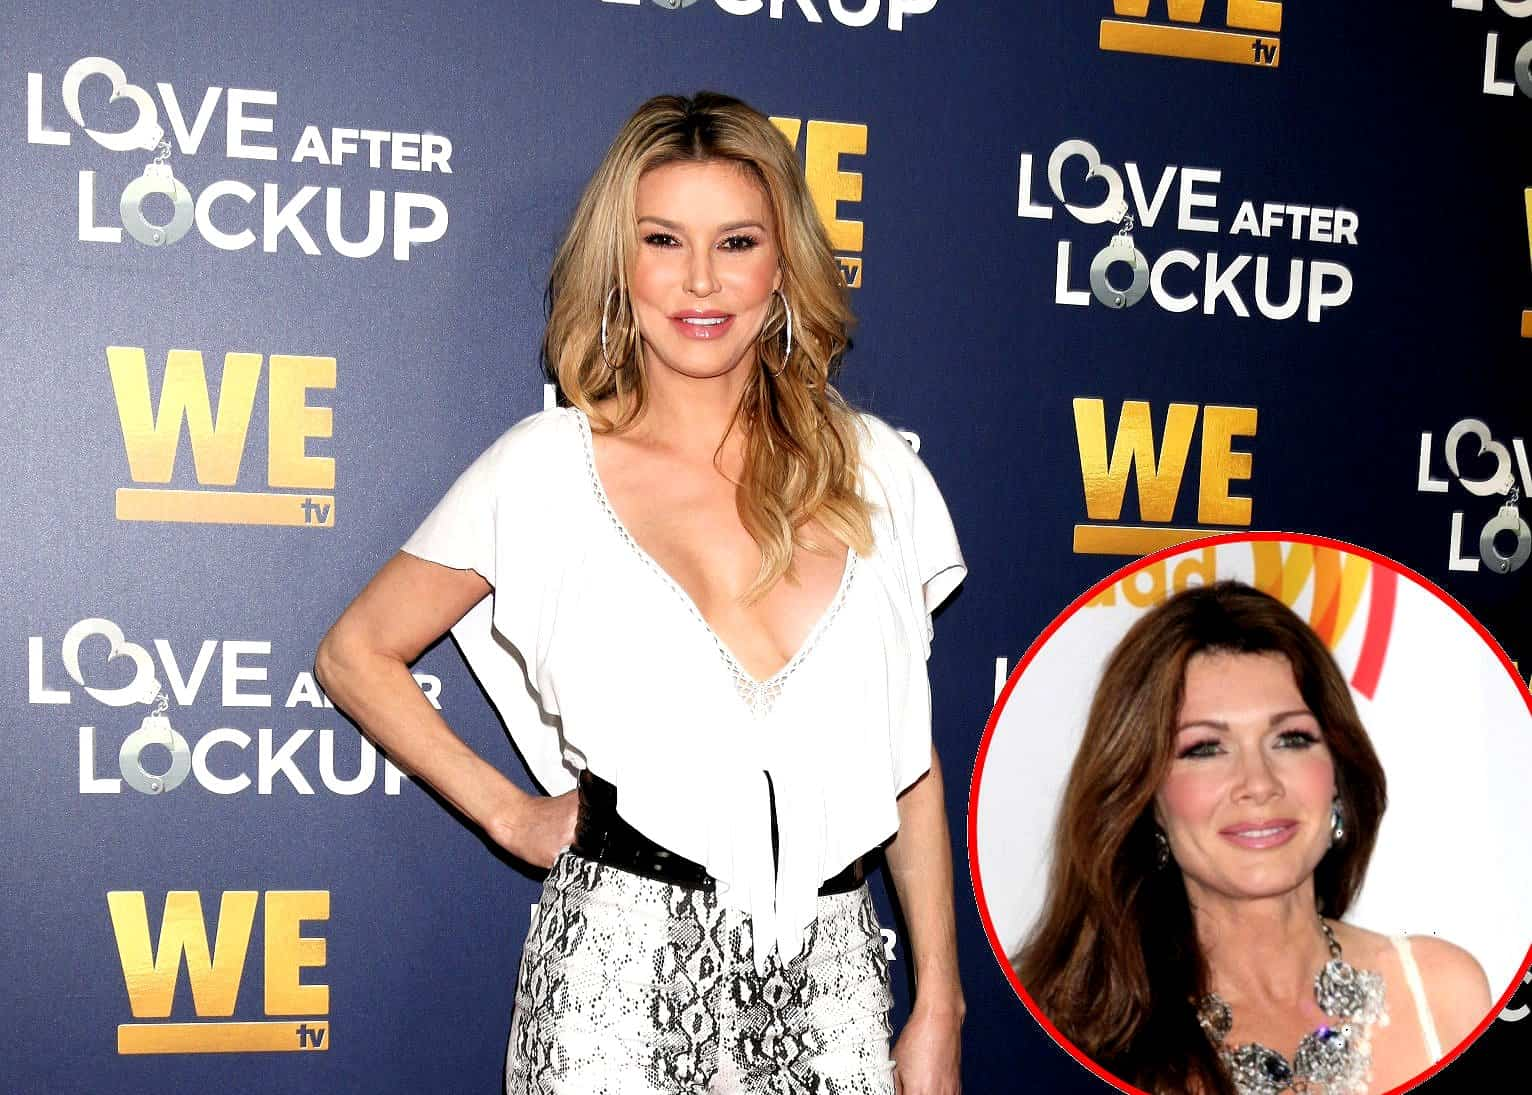 Brandi Glanville on why Lisa Vanderpump should quit RHOBH